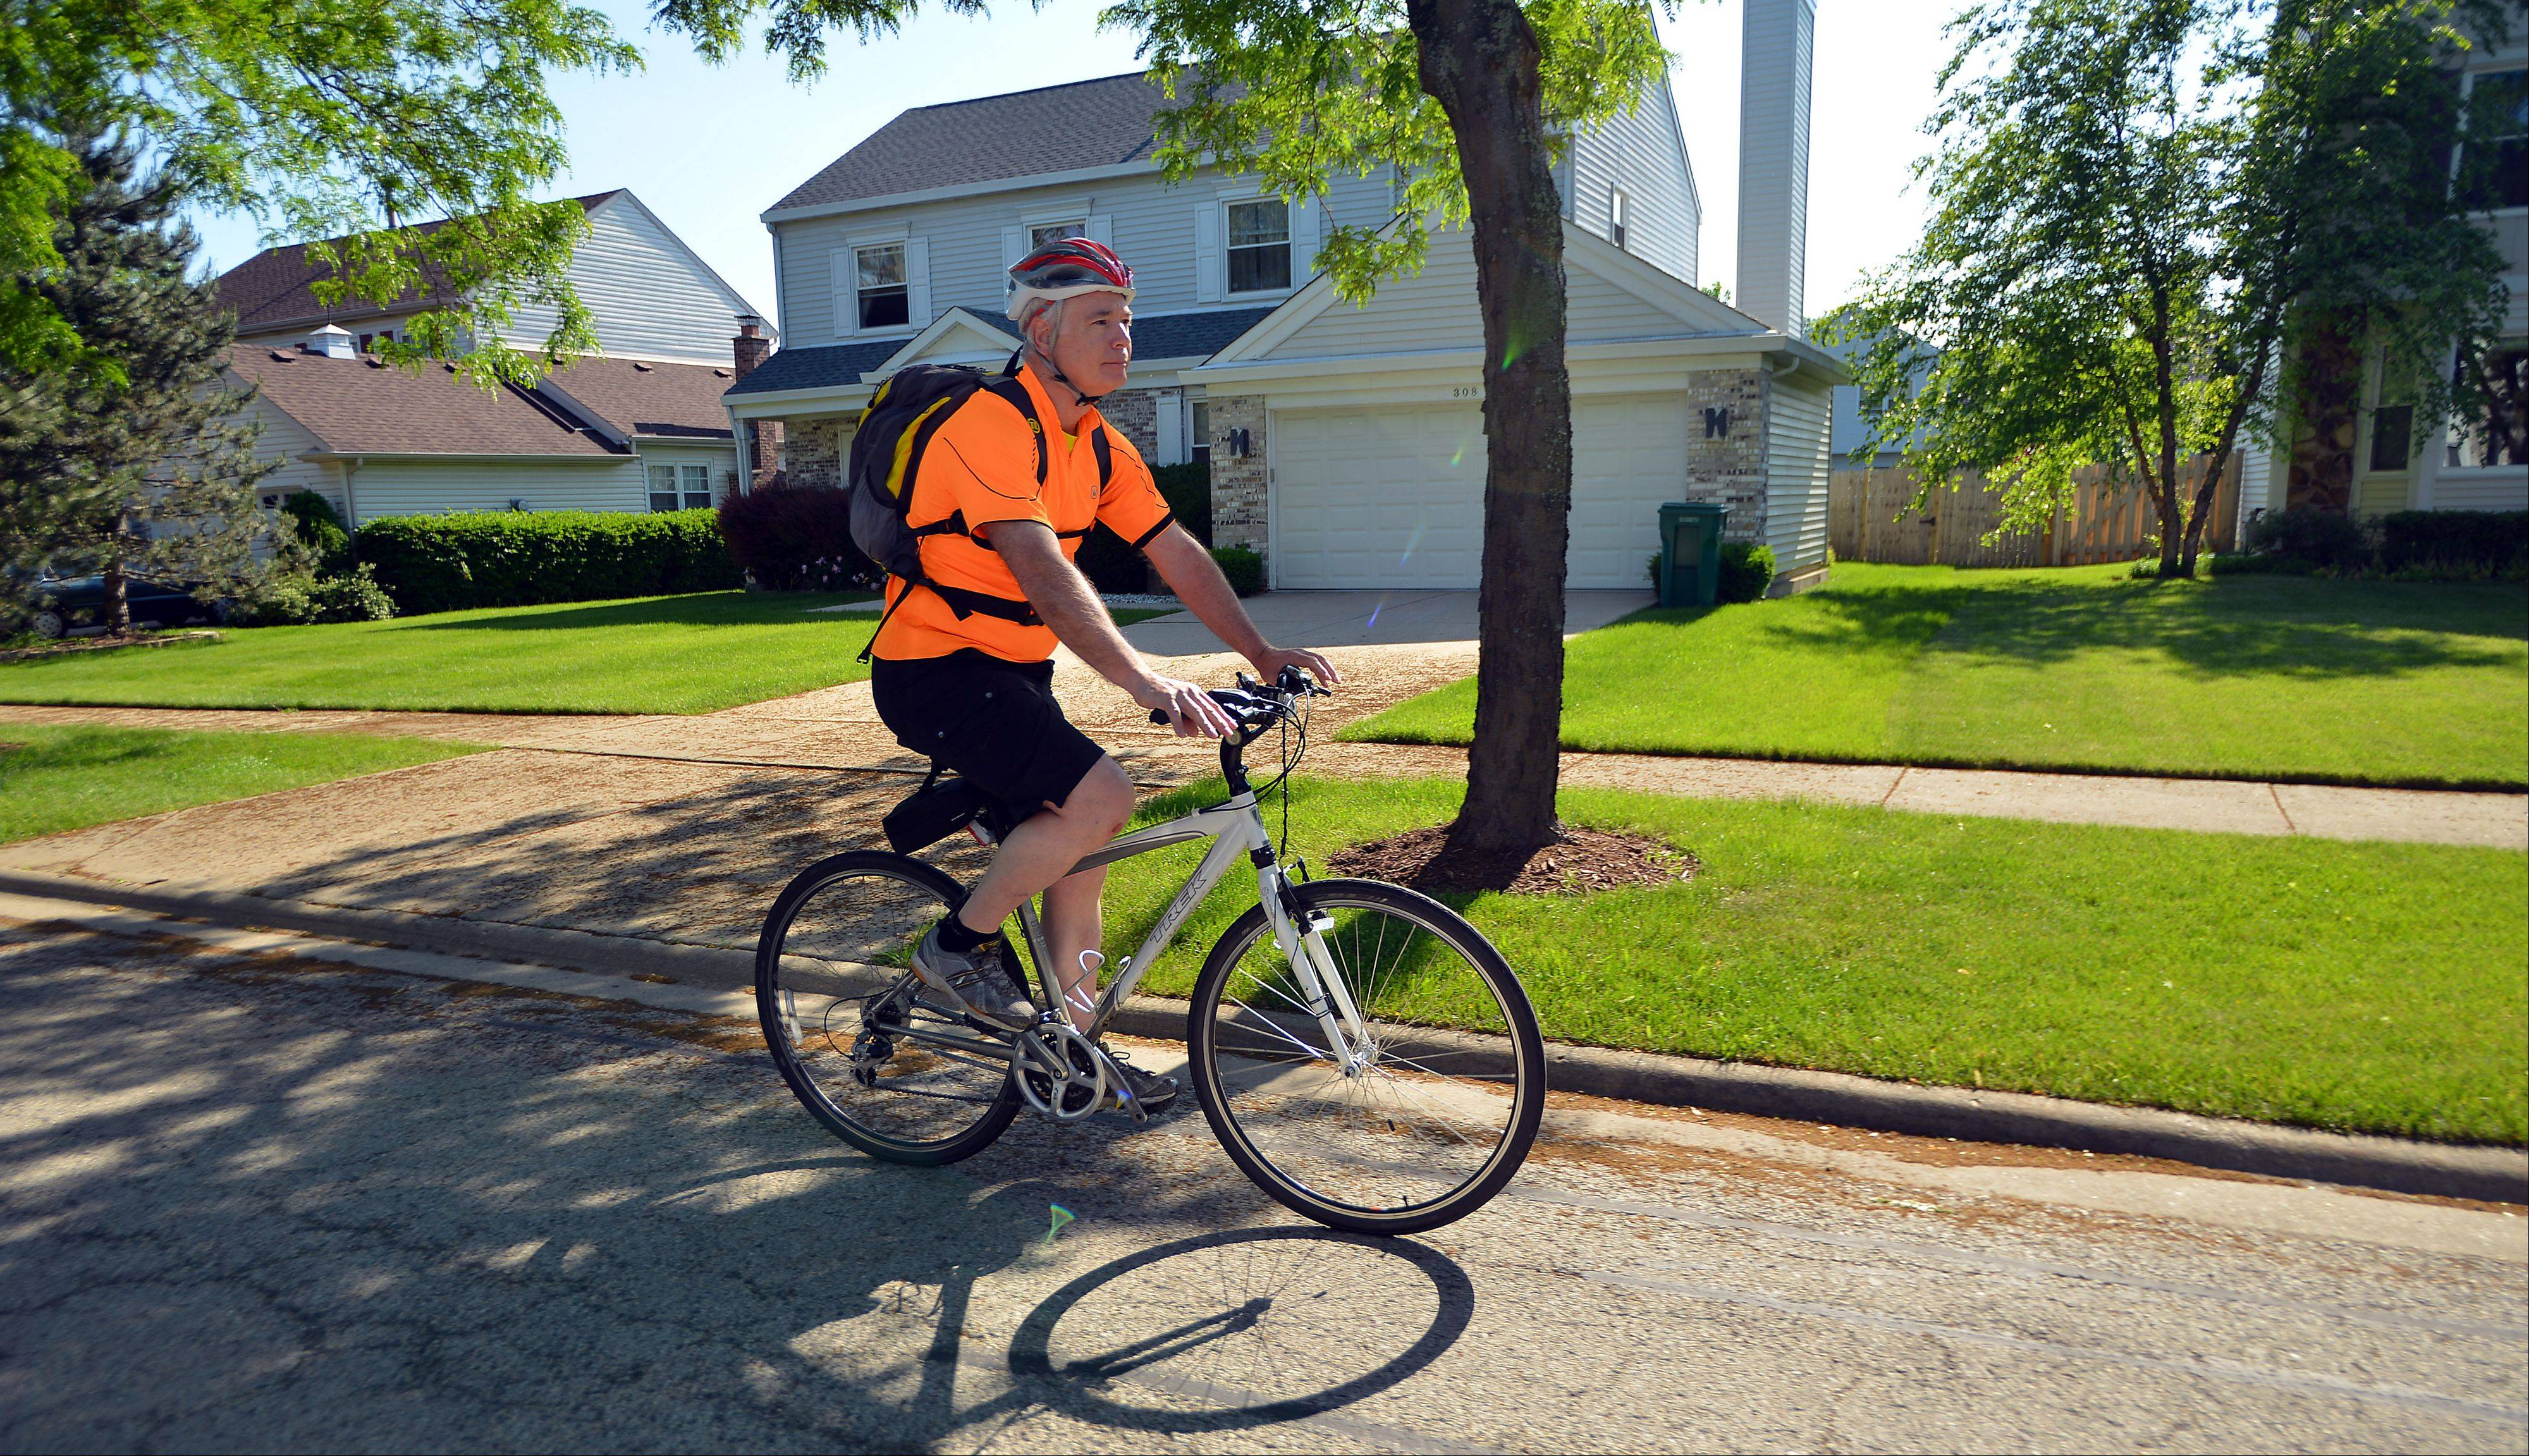 Buffalo Grove Village Planner Bob Pfeil starts out on his 50-minute ride home to Libertyville from village hall as part of the Bike Commuter Challenge last week.